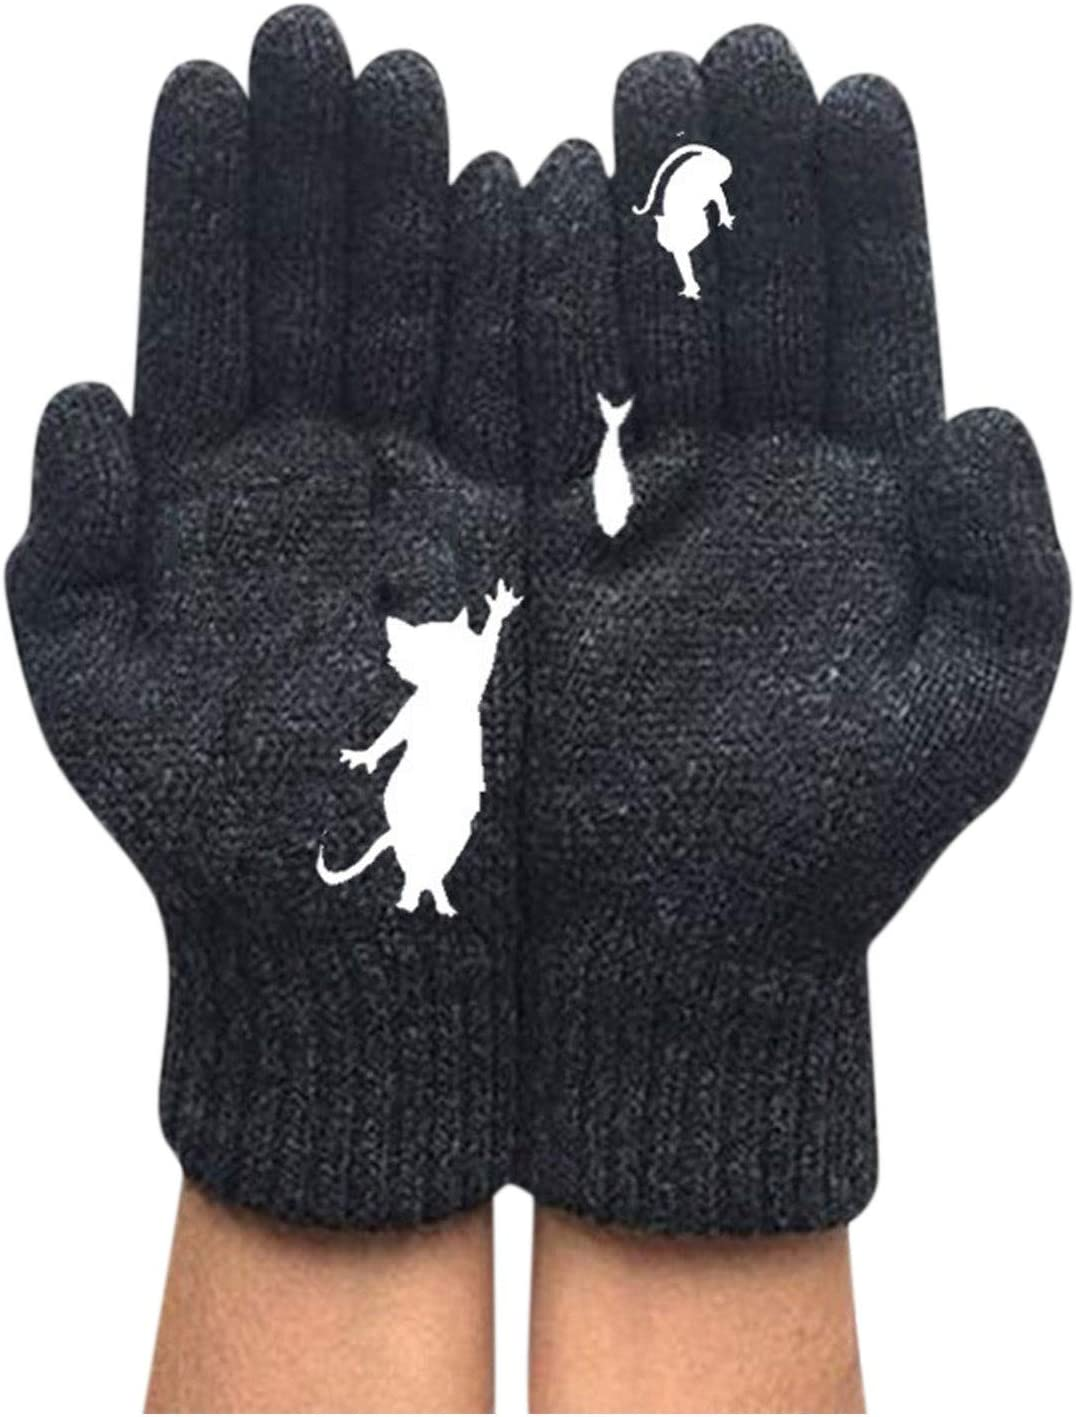 Women's Autumn Winter Warm Gloves Cable Knit Woolen Gloves Cute Dog Cat Printed Thermal Gloves for Ladies